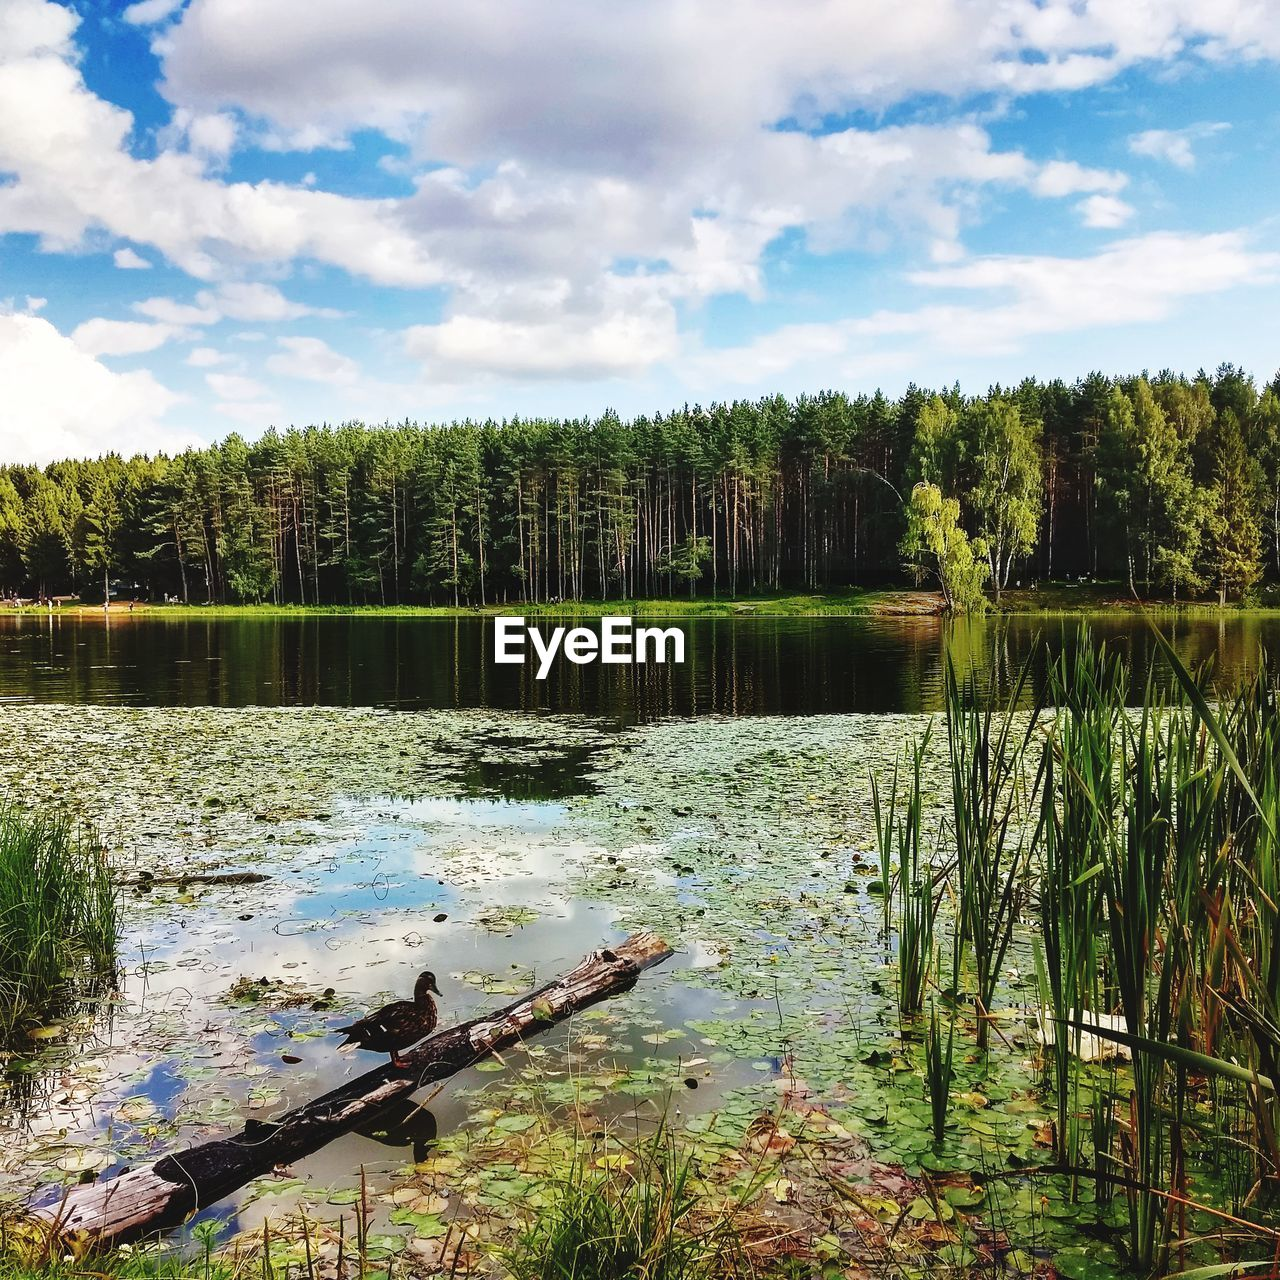 SCENIC VIEW OF LAKE AGAINST SKY IN FOREST